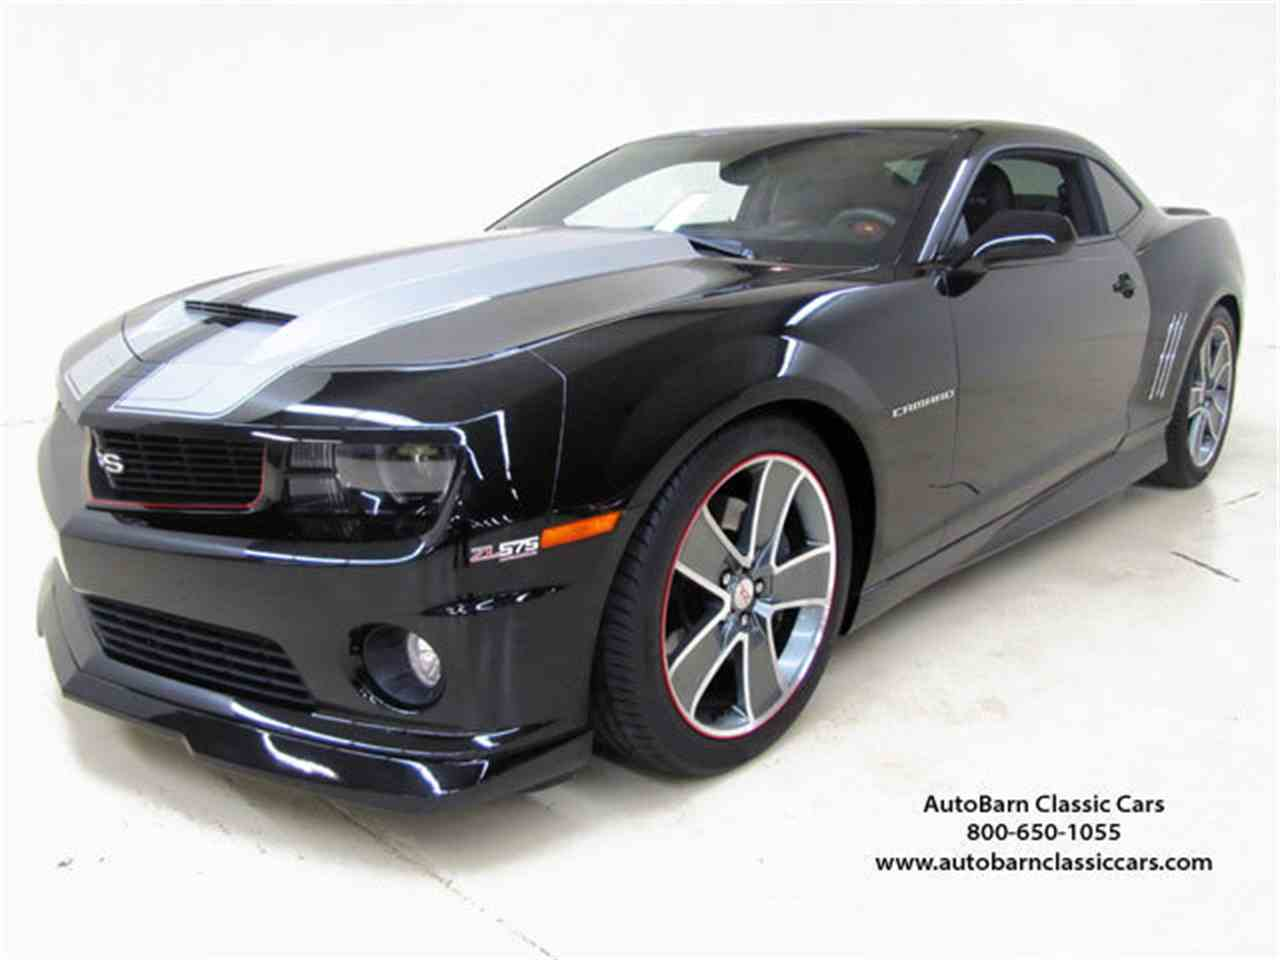 2010 chevrolet camaro slp zl 575 for sale classiccars. Black Bedroom Furniture Sets. Home Design Ideas